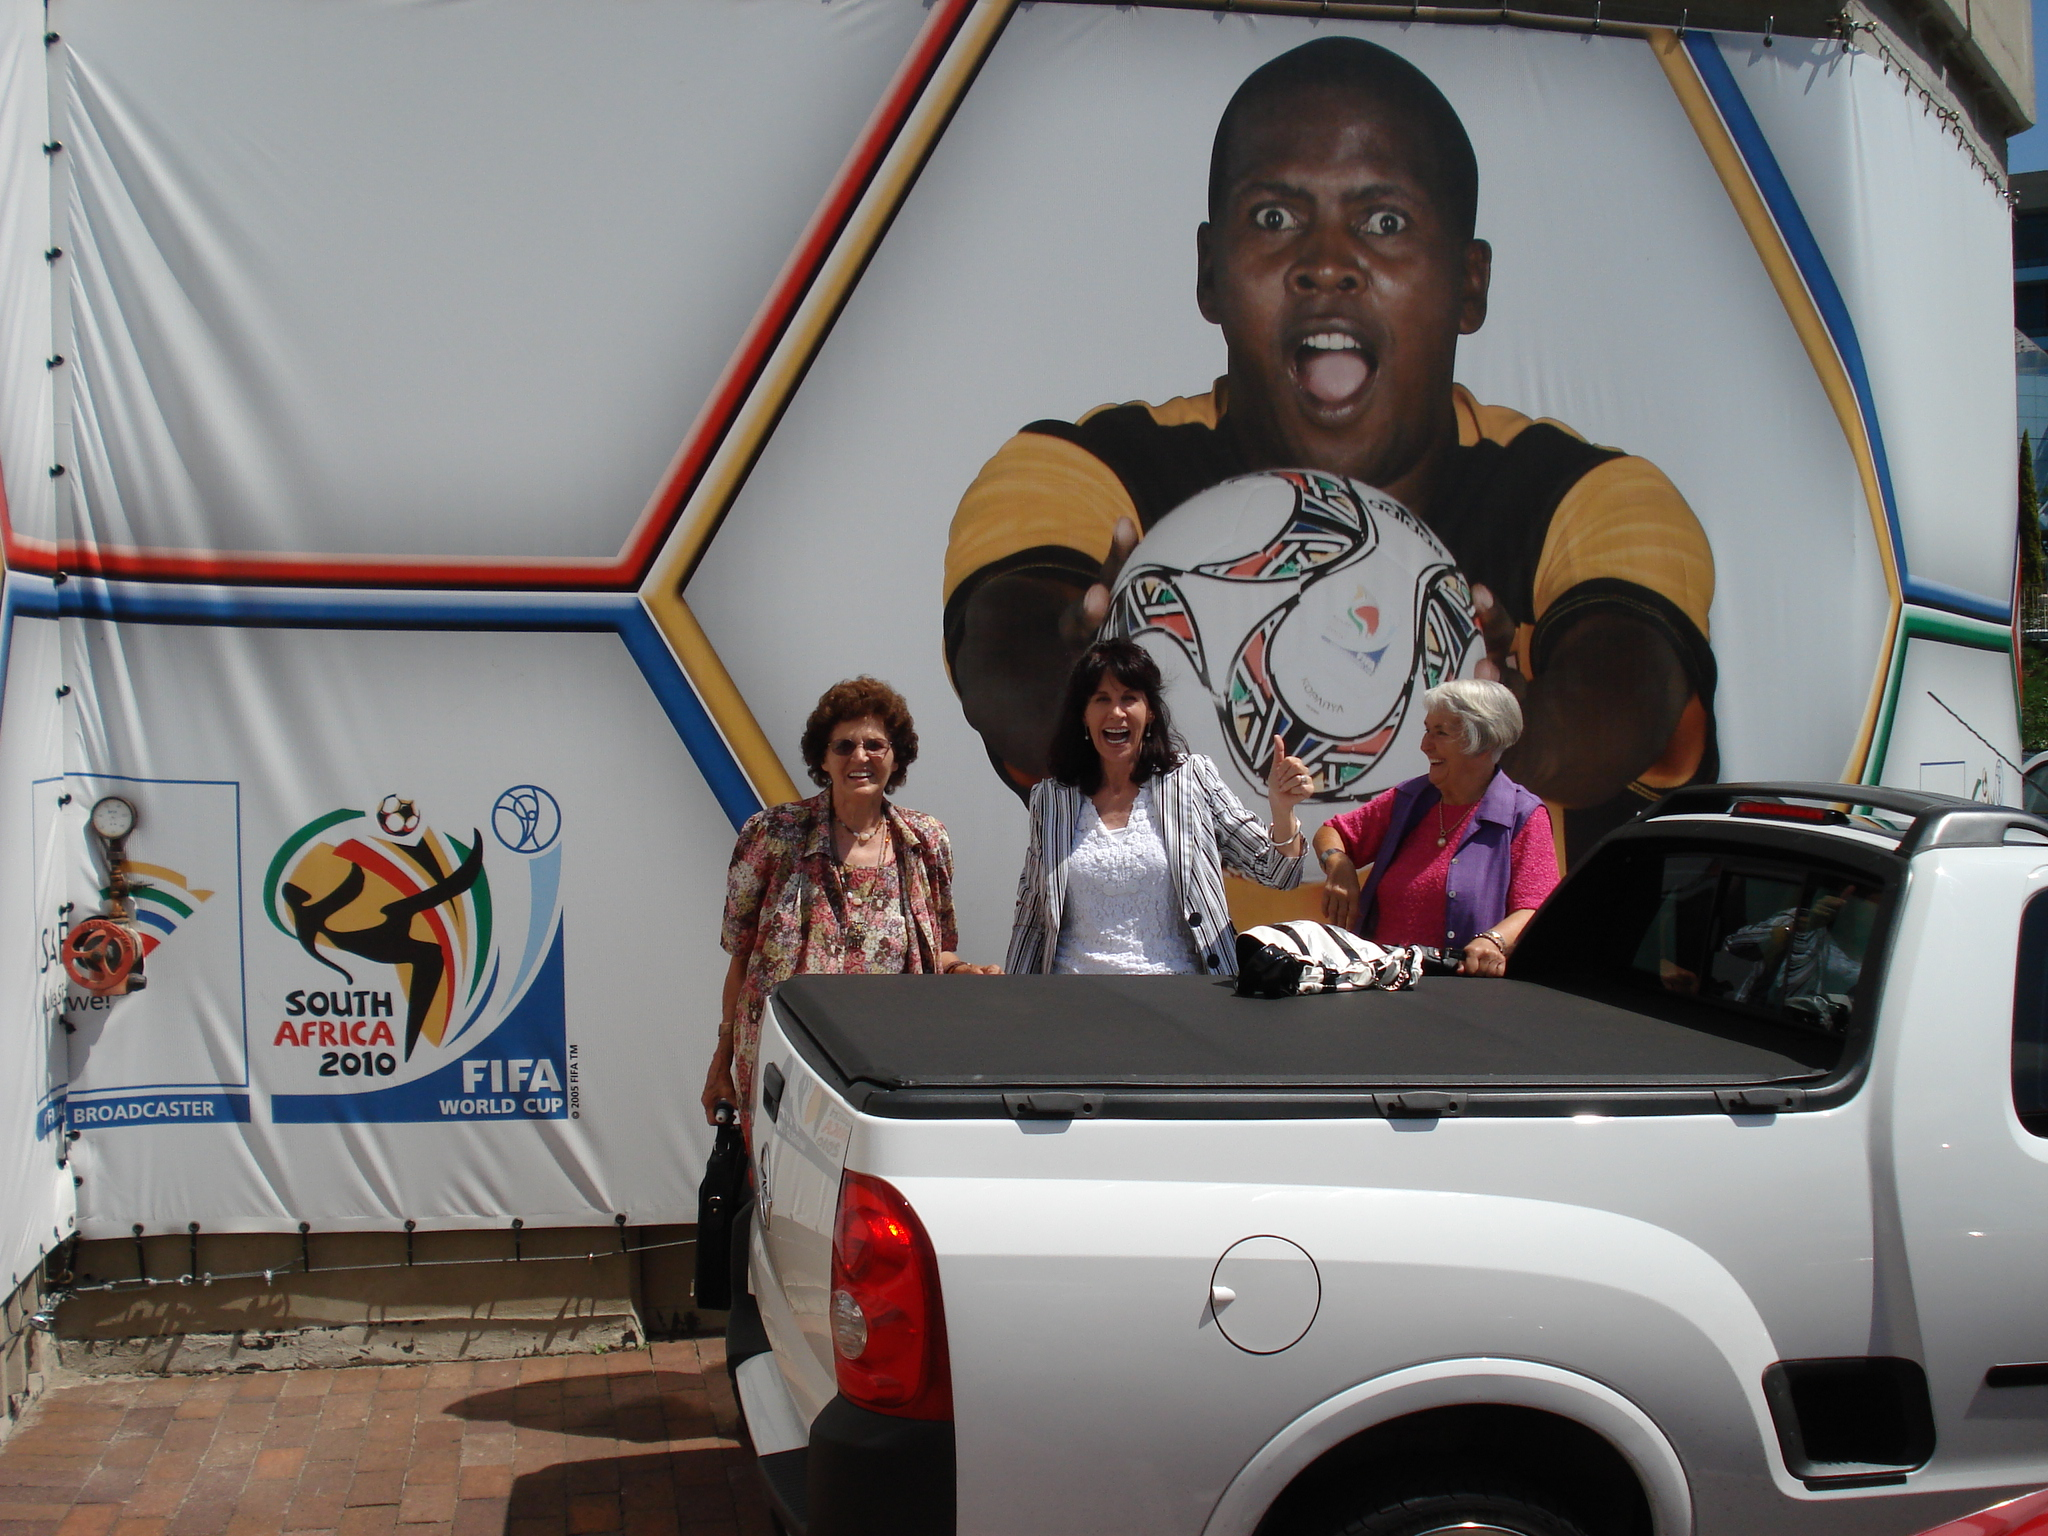 At the SABC during the WorldCup in 2010